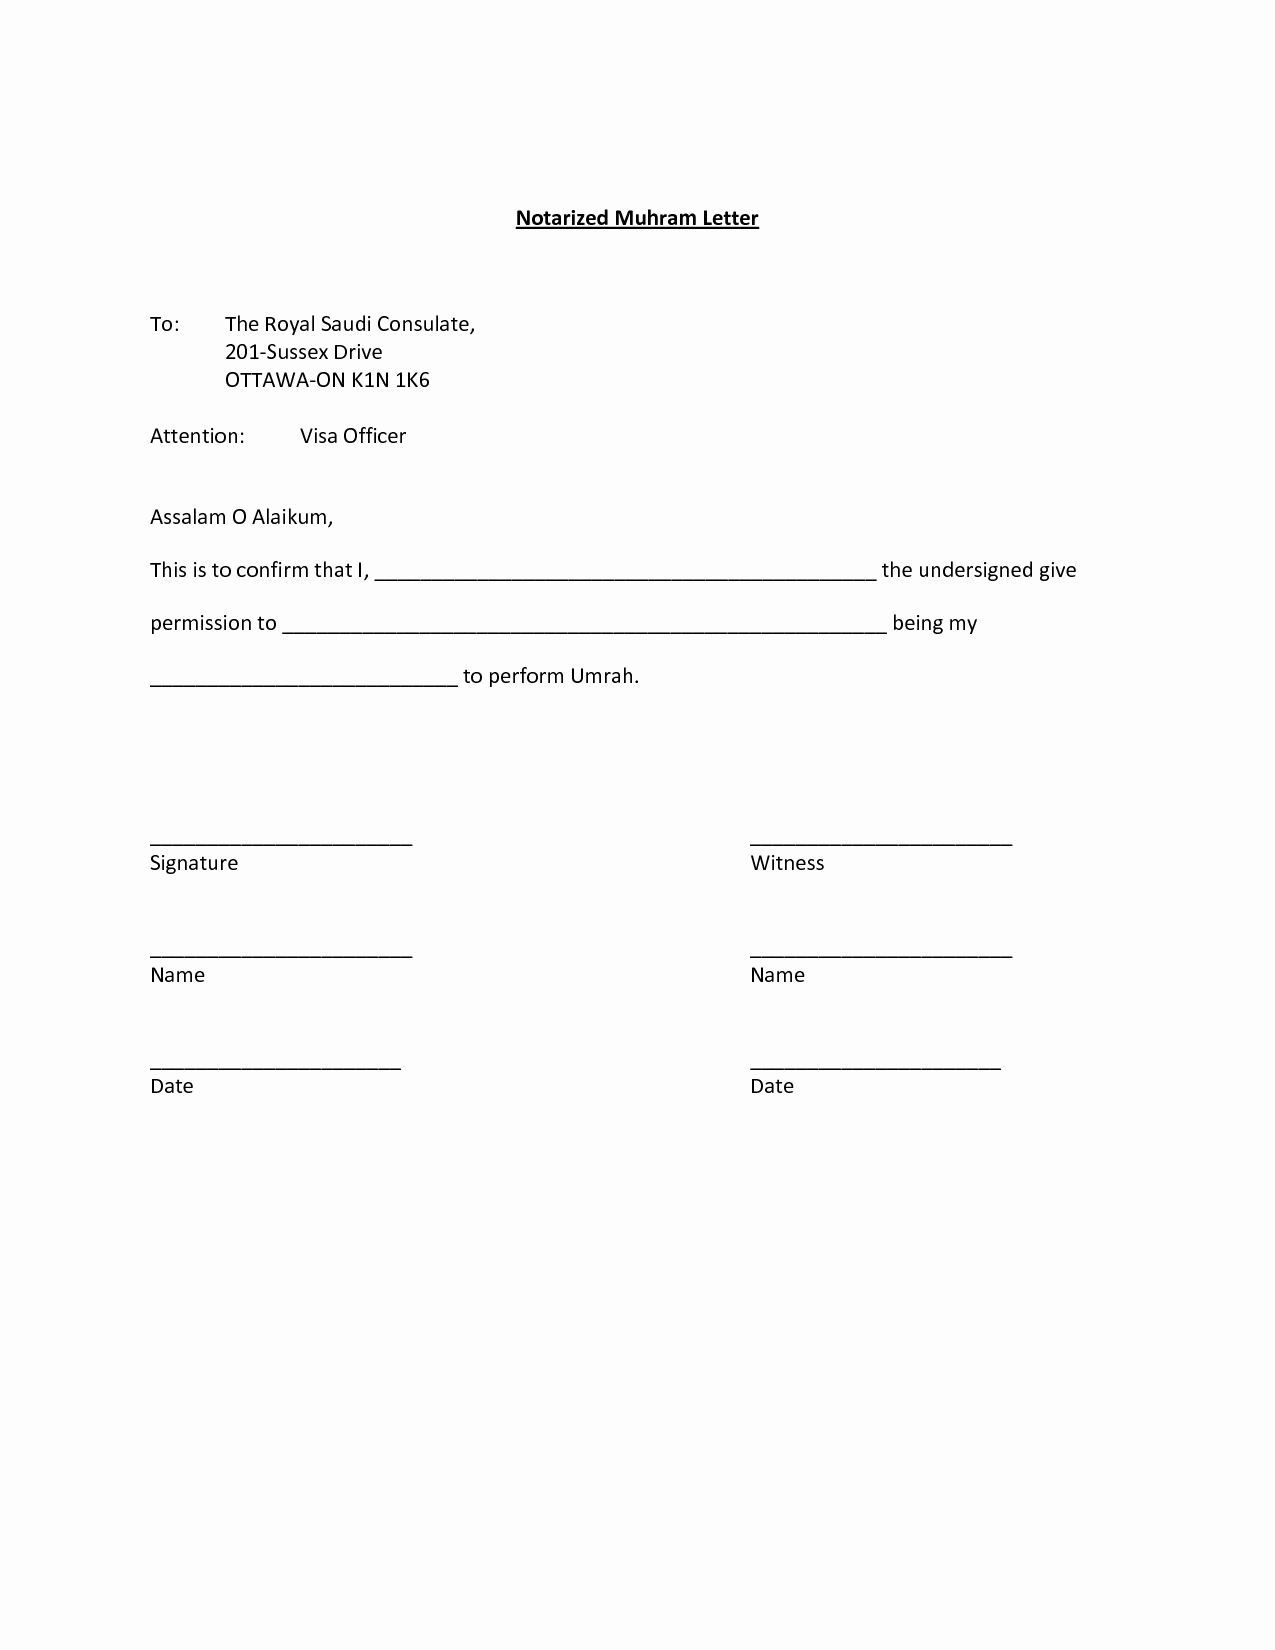 Notarized Letter Template Word Best Of Best S Of Sample Notarized Letter Signature